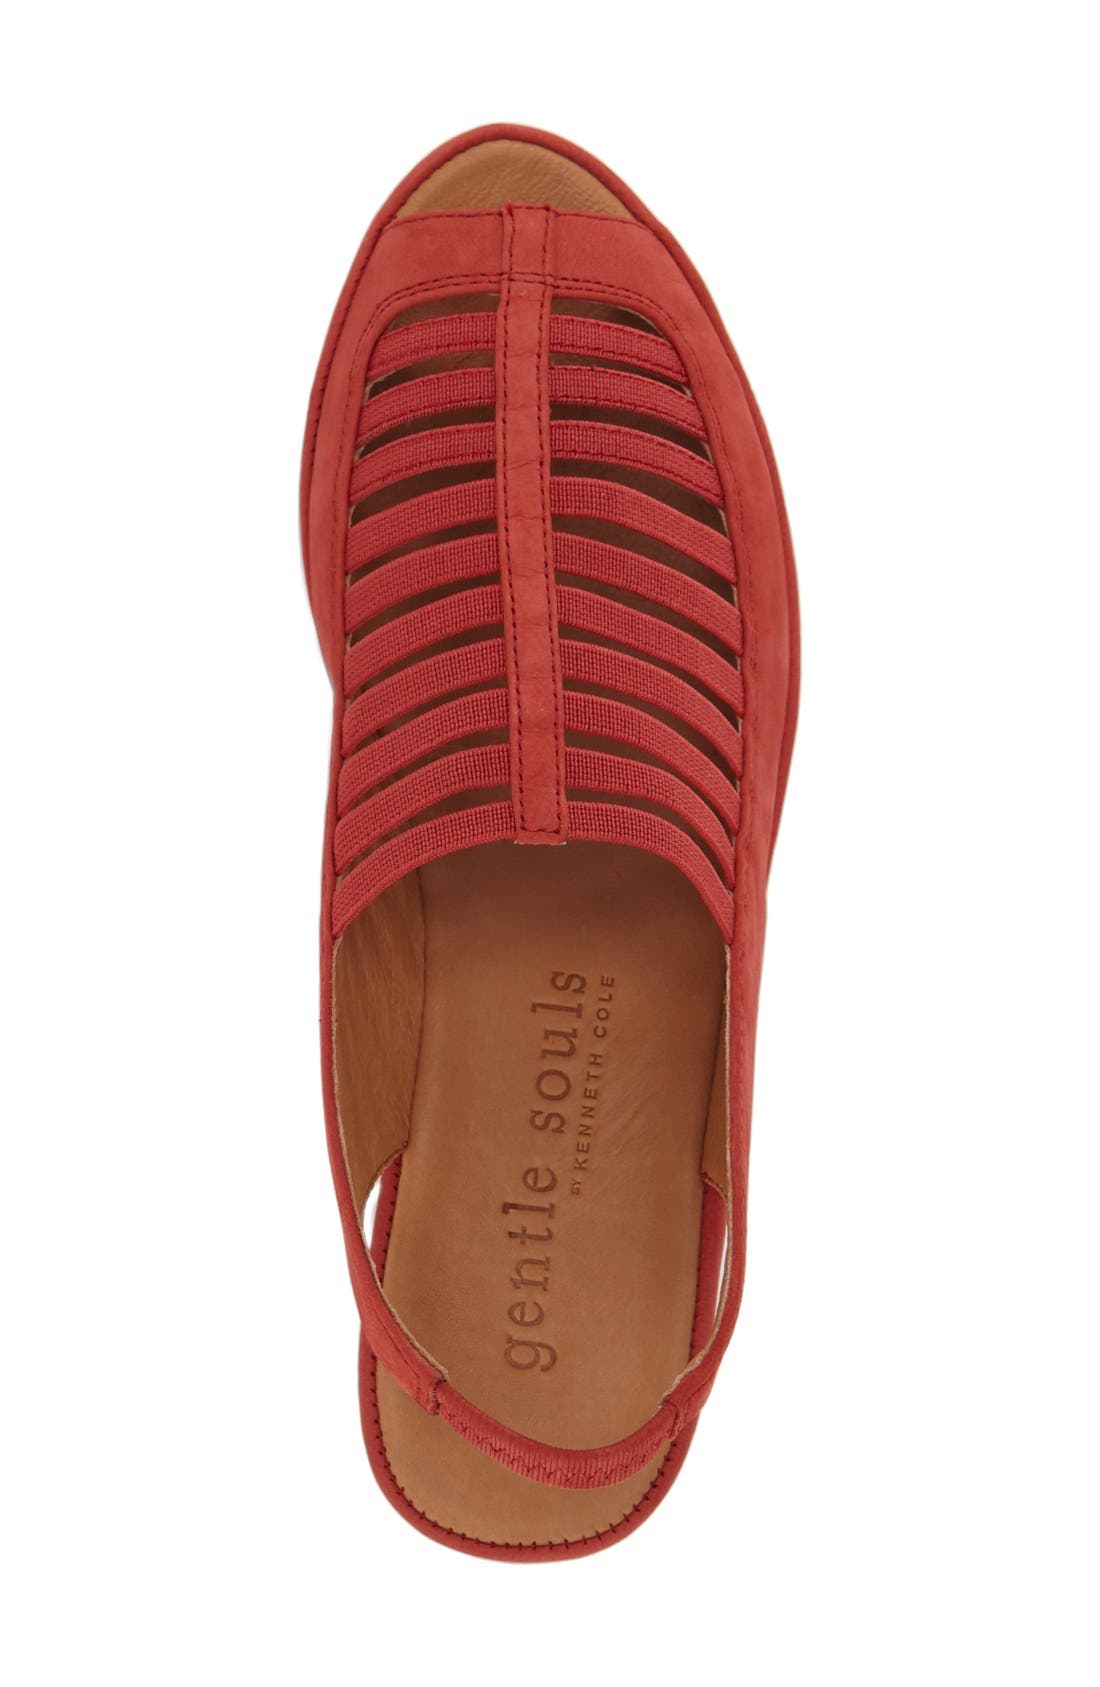 by Kenneth Cole 'Lee' Sandal,                             Alternate thumbnail 21, color,